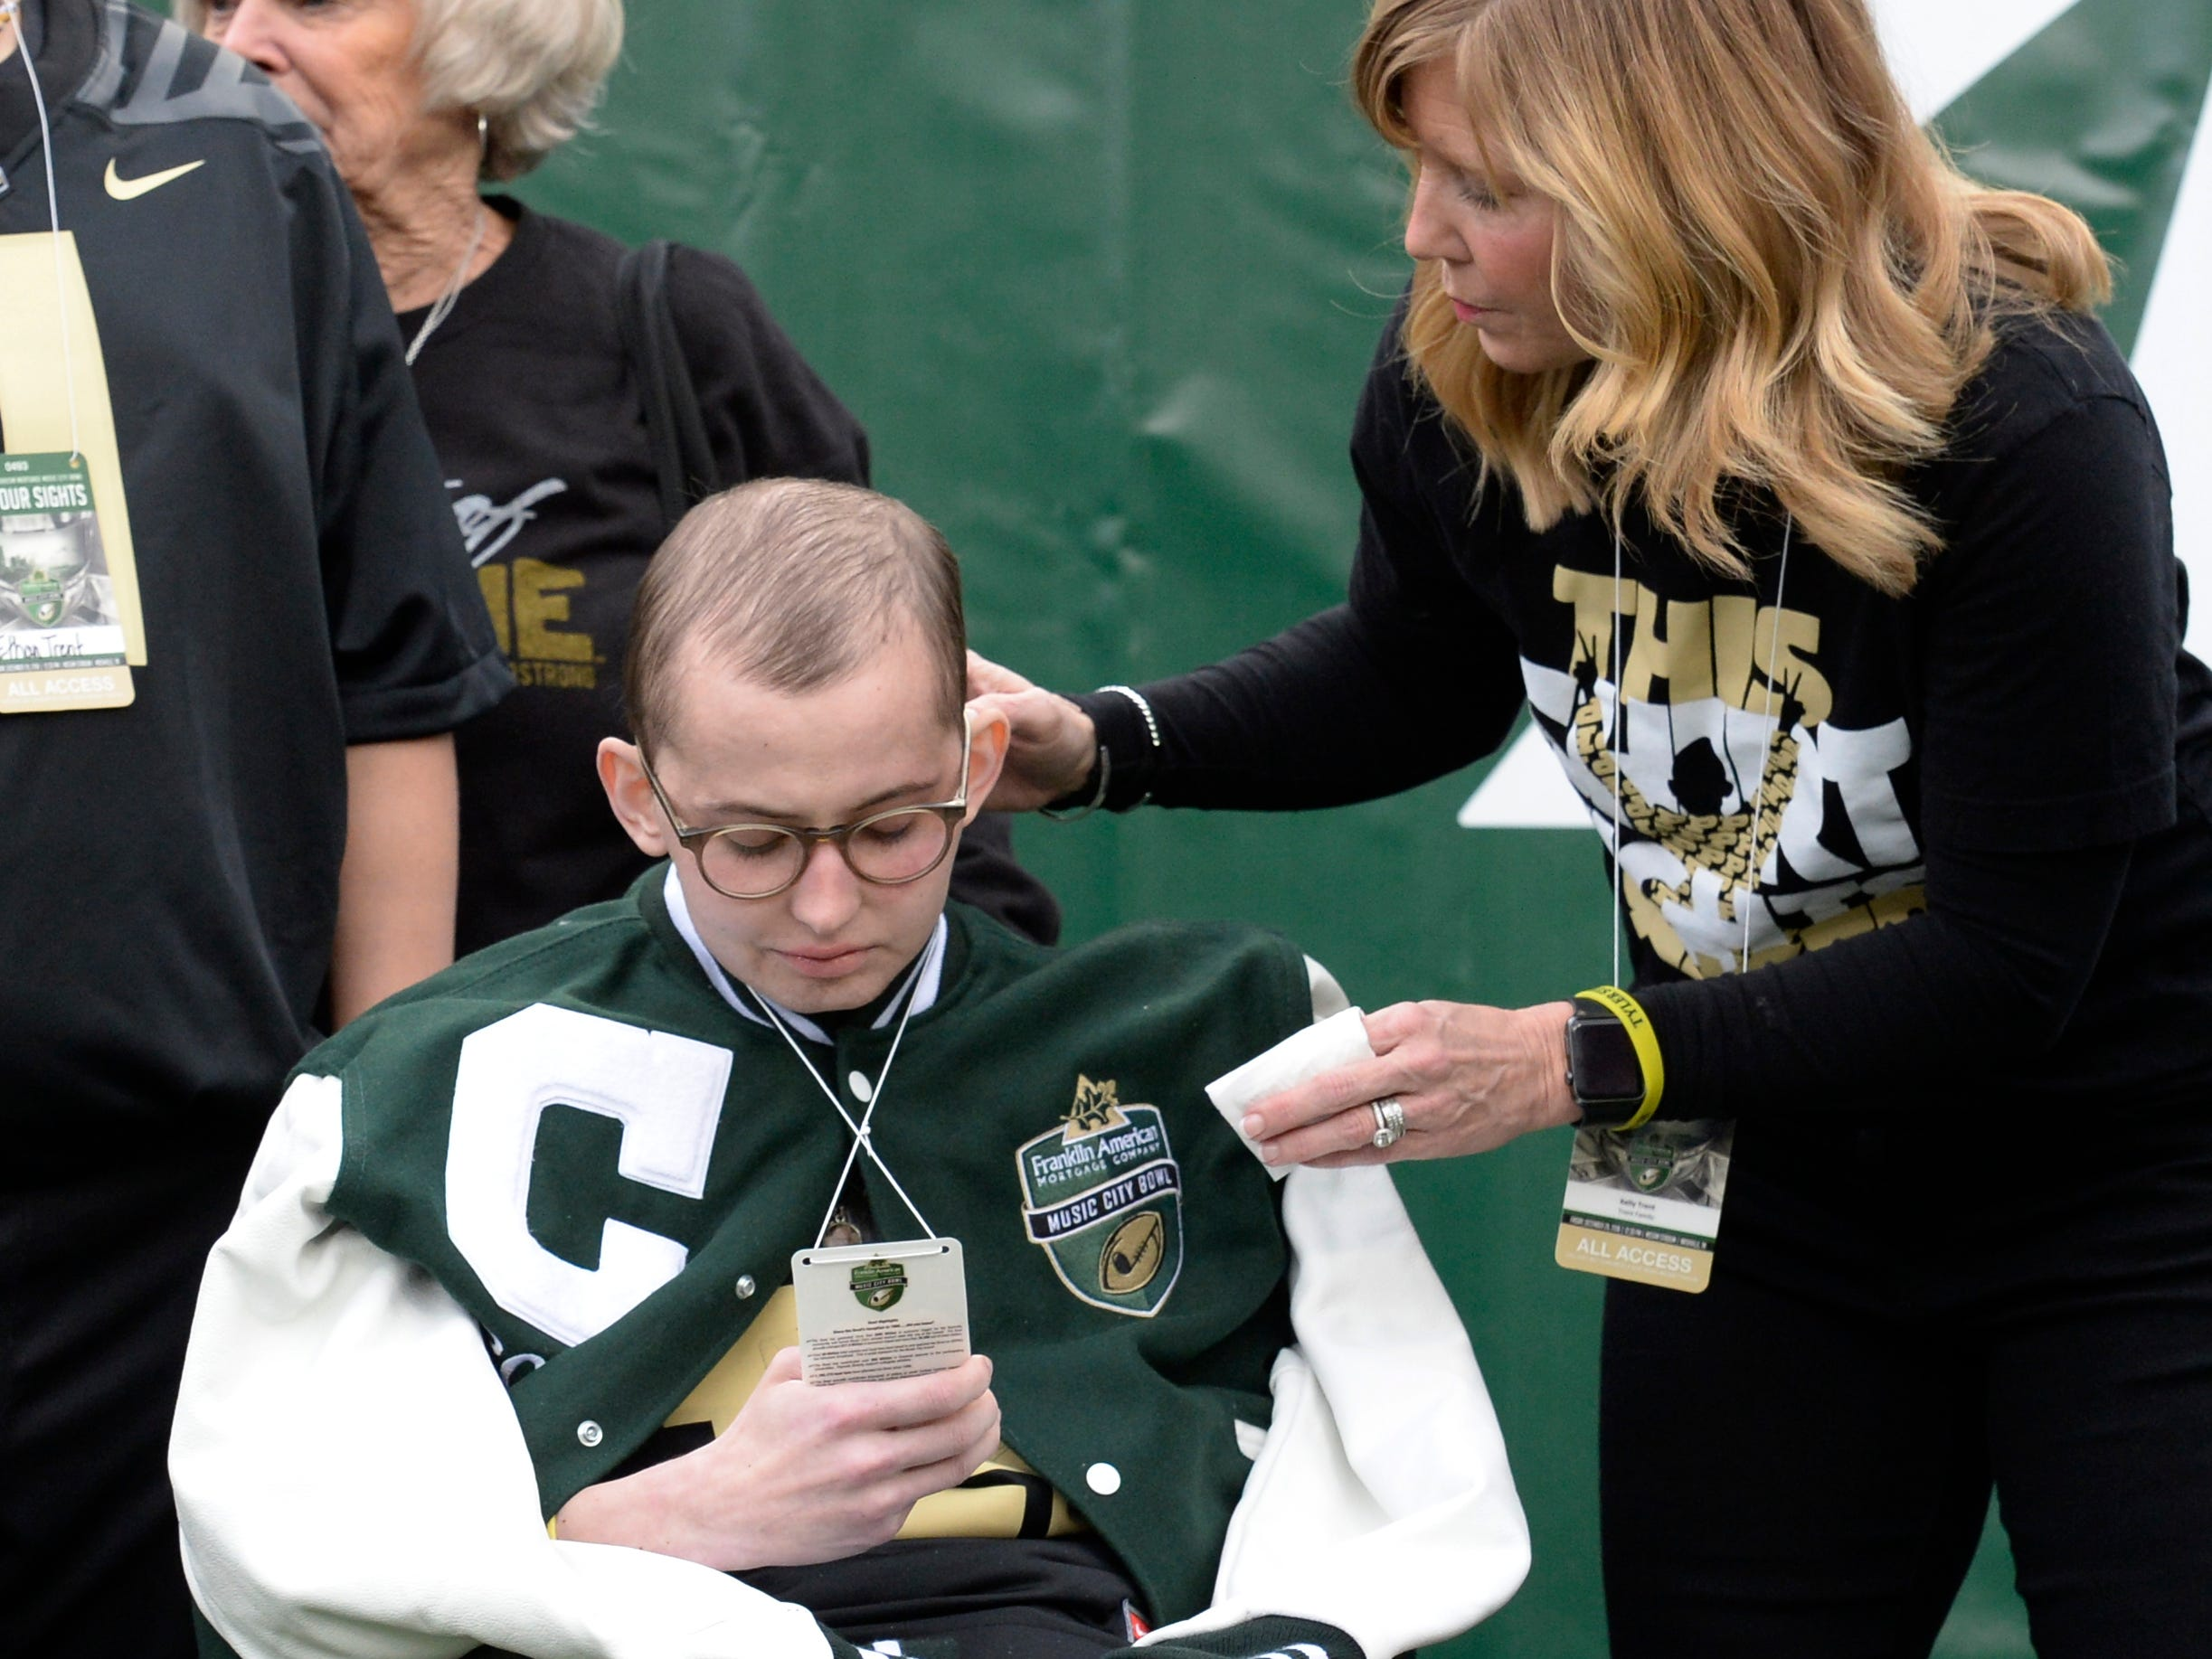 Purdue honorary captain Tyler Trent checks out his credential before the start of the Music City Bowl NCAA college football game Friday, Dec. 28, 2018, at Nissan Stadium in Nashville, Tenn.